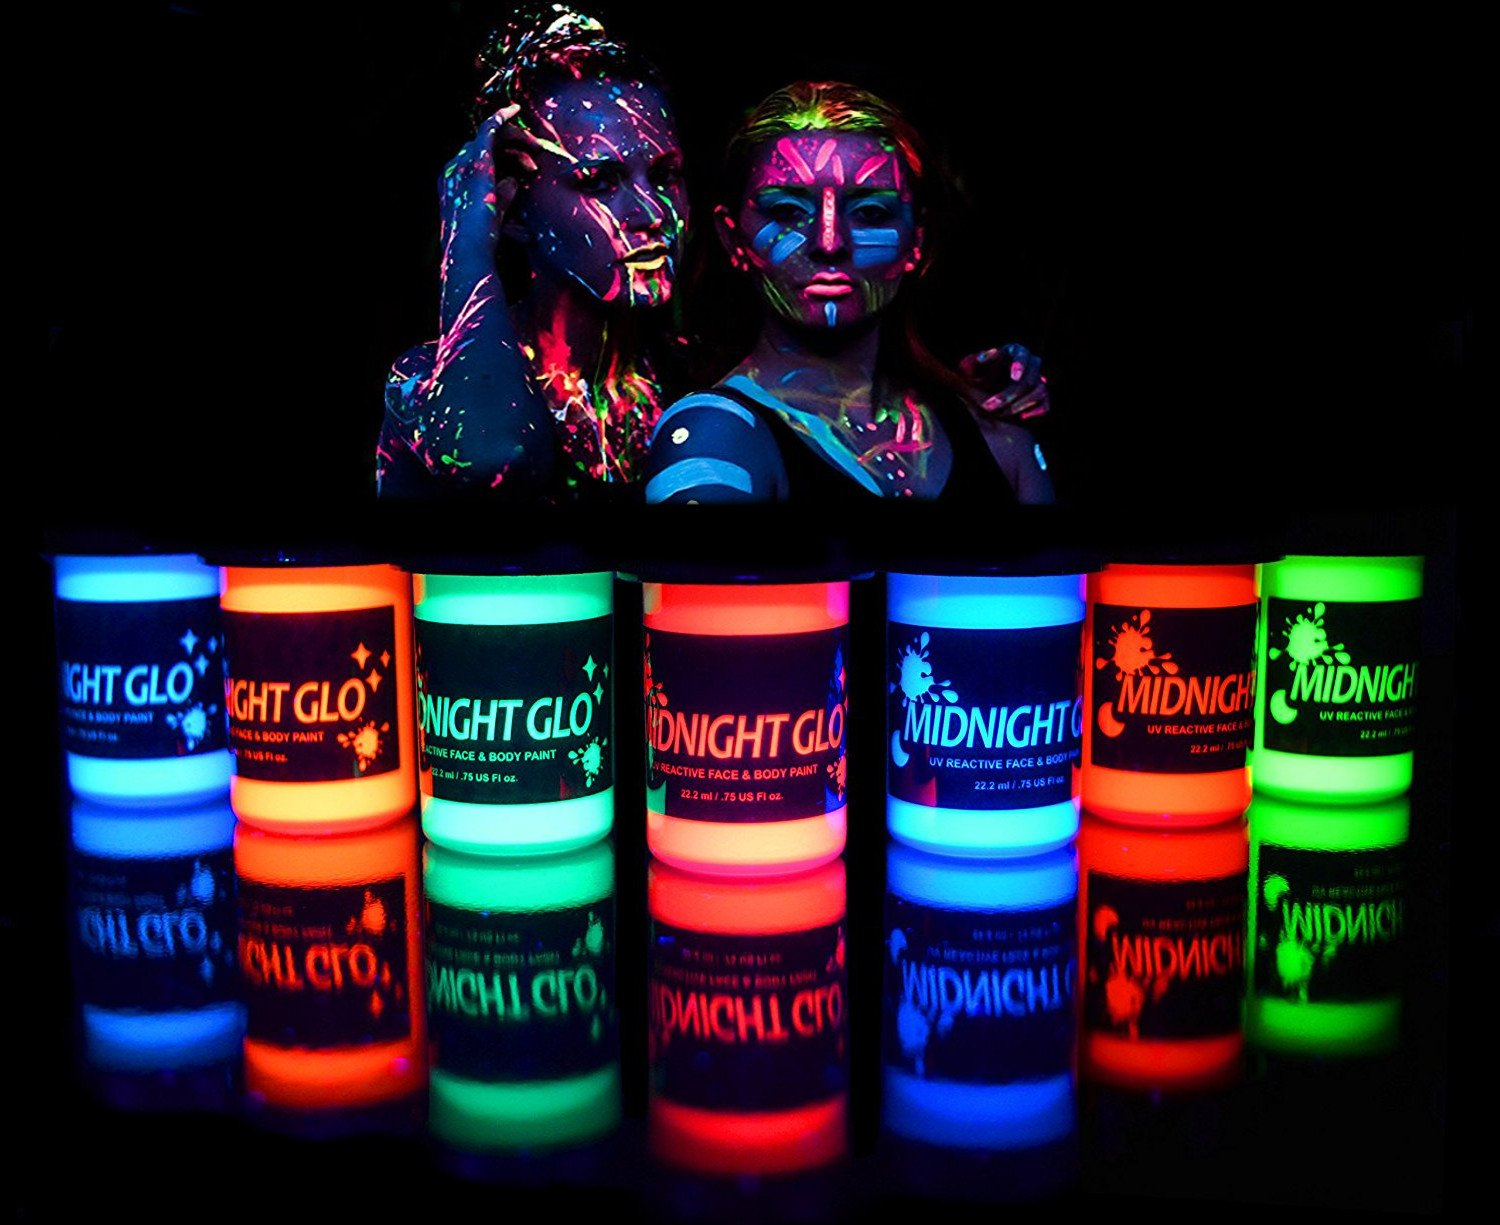 UV Neon Face & Body Paint Glow Kit (7 Bottles.75 oz. Each) - Top Rated Blacklight Reactive Fluorescent Paint - Safe Washable Non-Toxic By Midnight Glo